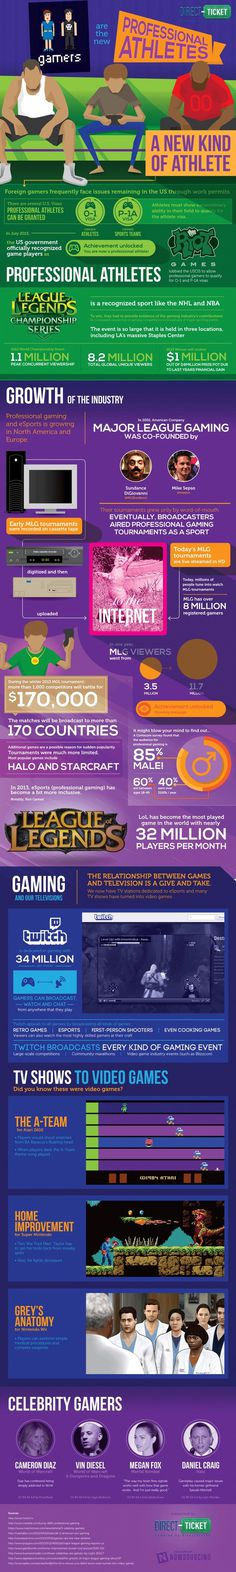 Gamers are the New Professional Athletes #gamers #legends #athletes #competition #players #mlg #infographic #of #hale #professional #league